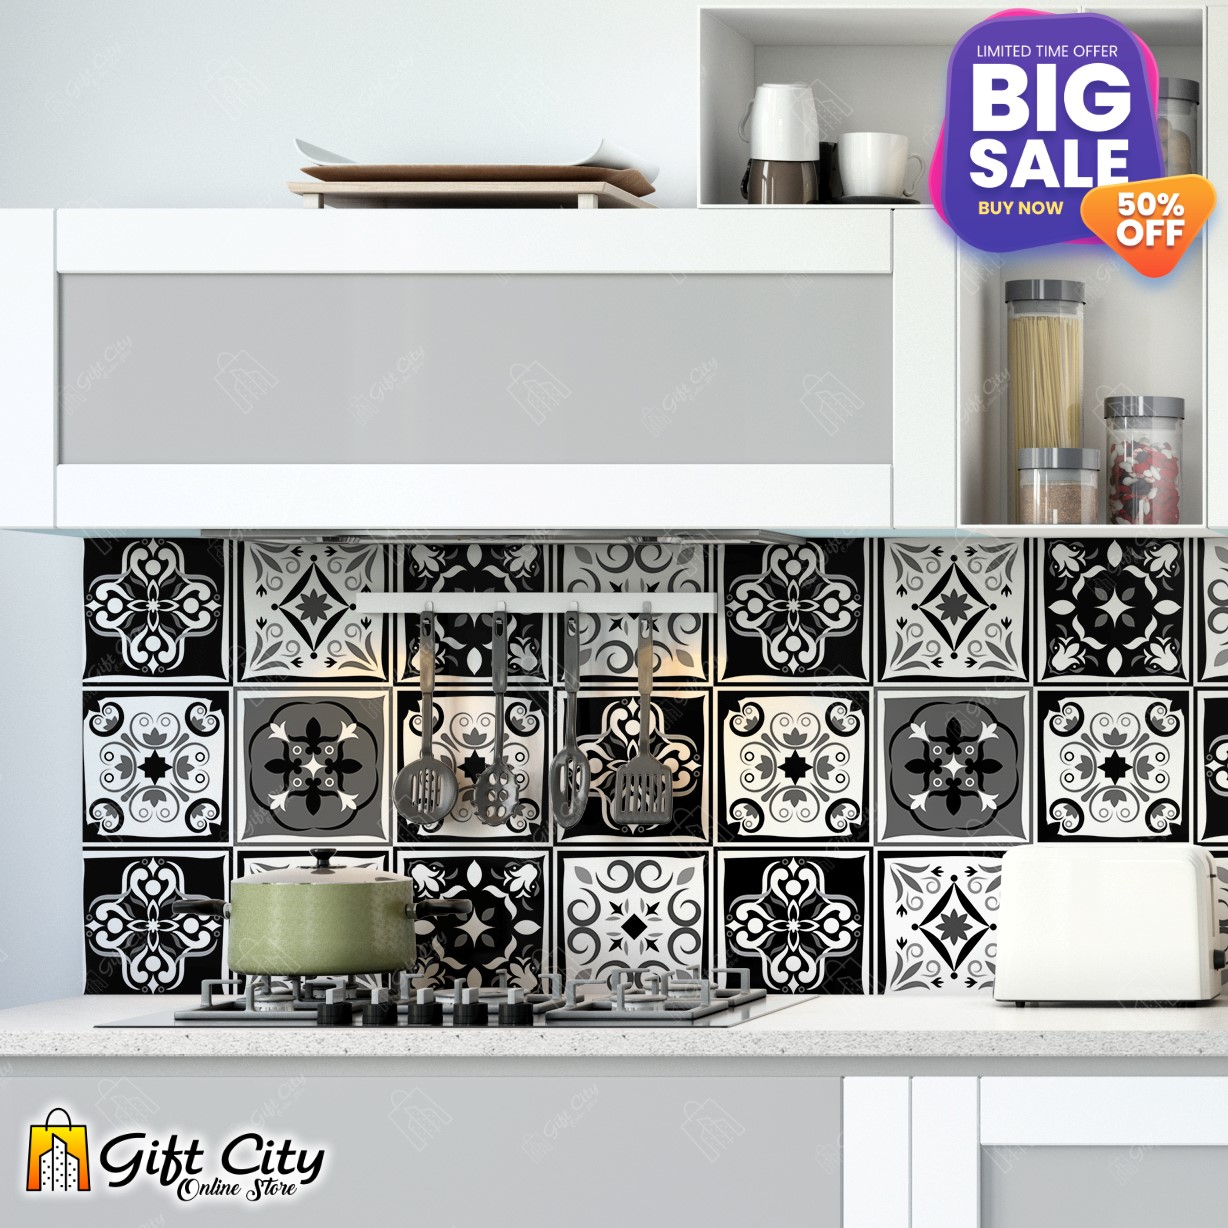 Tile Stickers Black & White Pattern Pack of 6 / 12 / 24 / 48 / 102 pieces for Home Decor for Walls Self Adhesive Tile Sticker 4.7 in by 4.7 in